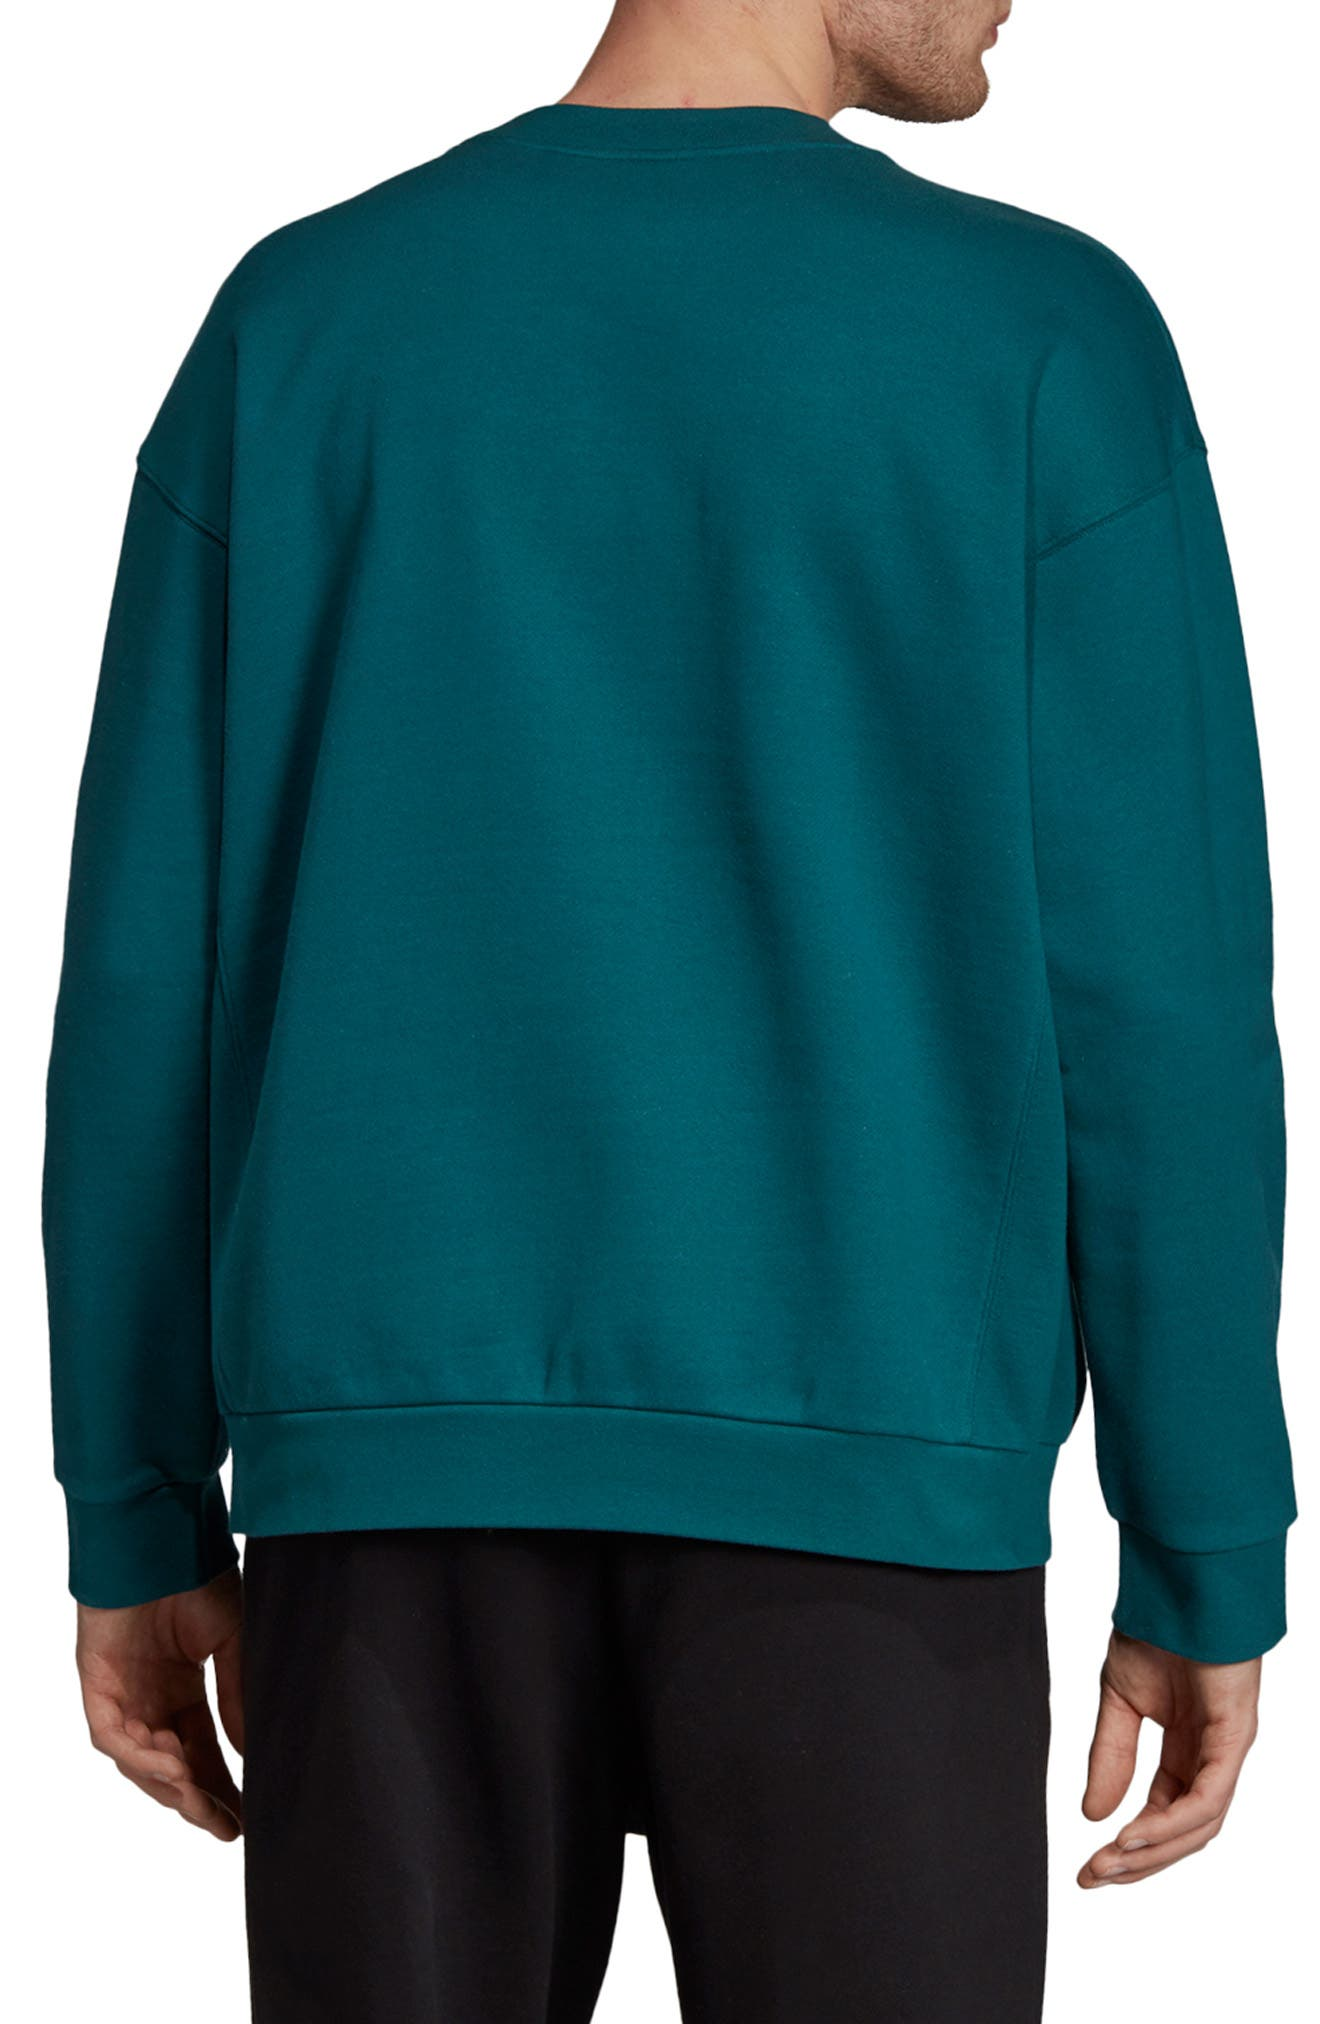 ADIDAS ORIGINALS, Arc Sweatshirt, Alternate thumbnail 2, color, RICH GREEN